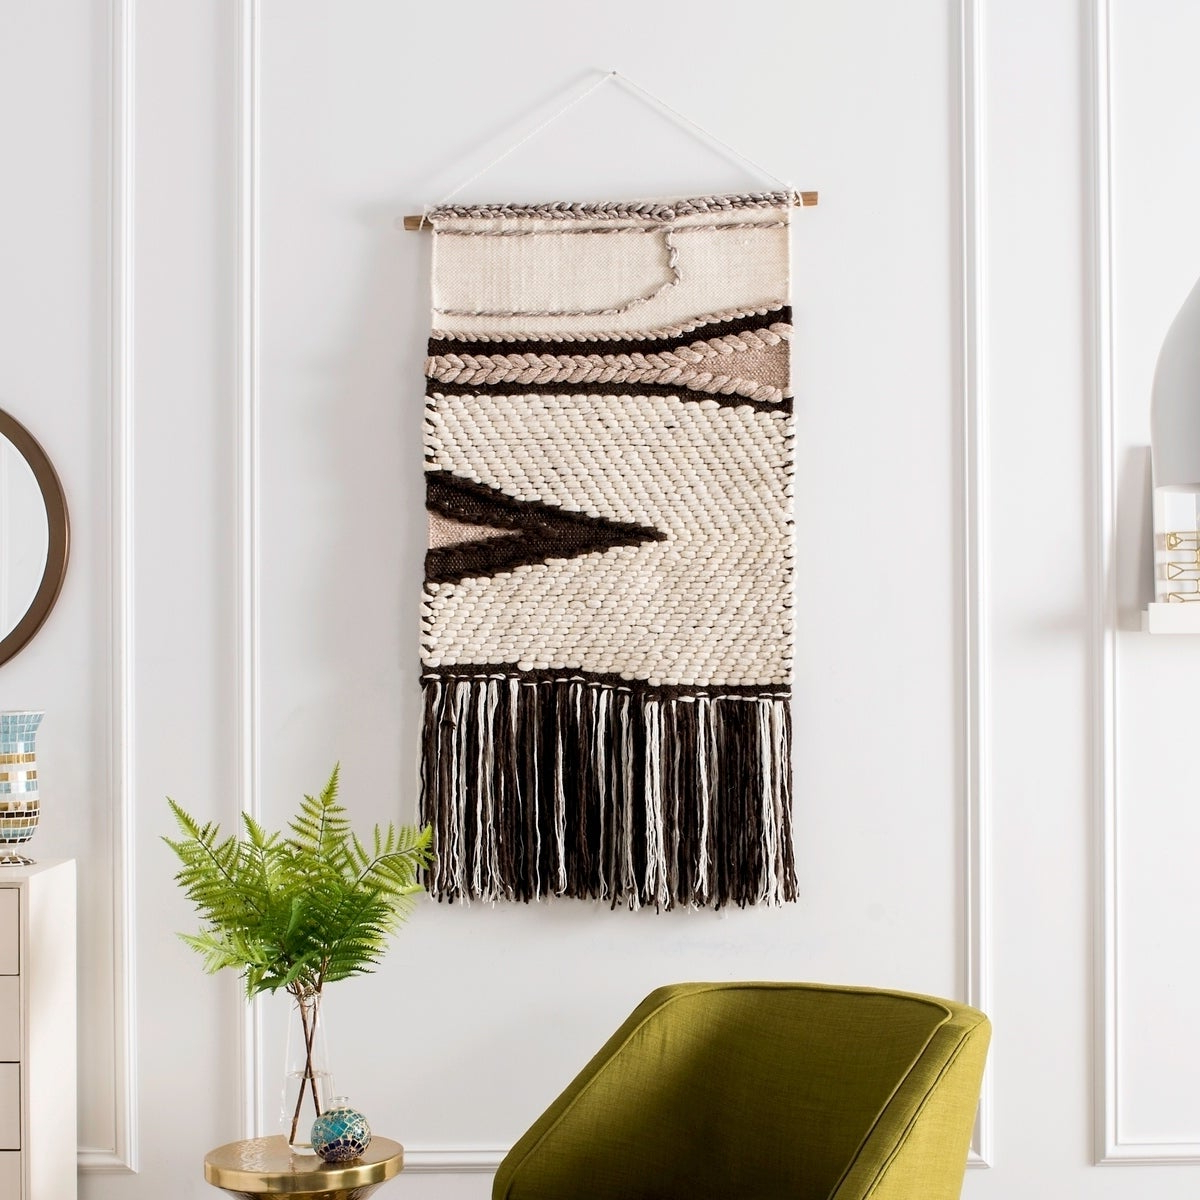 Famous 4 Piece Handwoven Wheel Wall Decor Sets With Regard To Shop Safavieh Sedona Hand Woven Wall Tapestry 111 – 2' X 3' – Free (View 6 of 20)